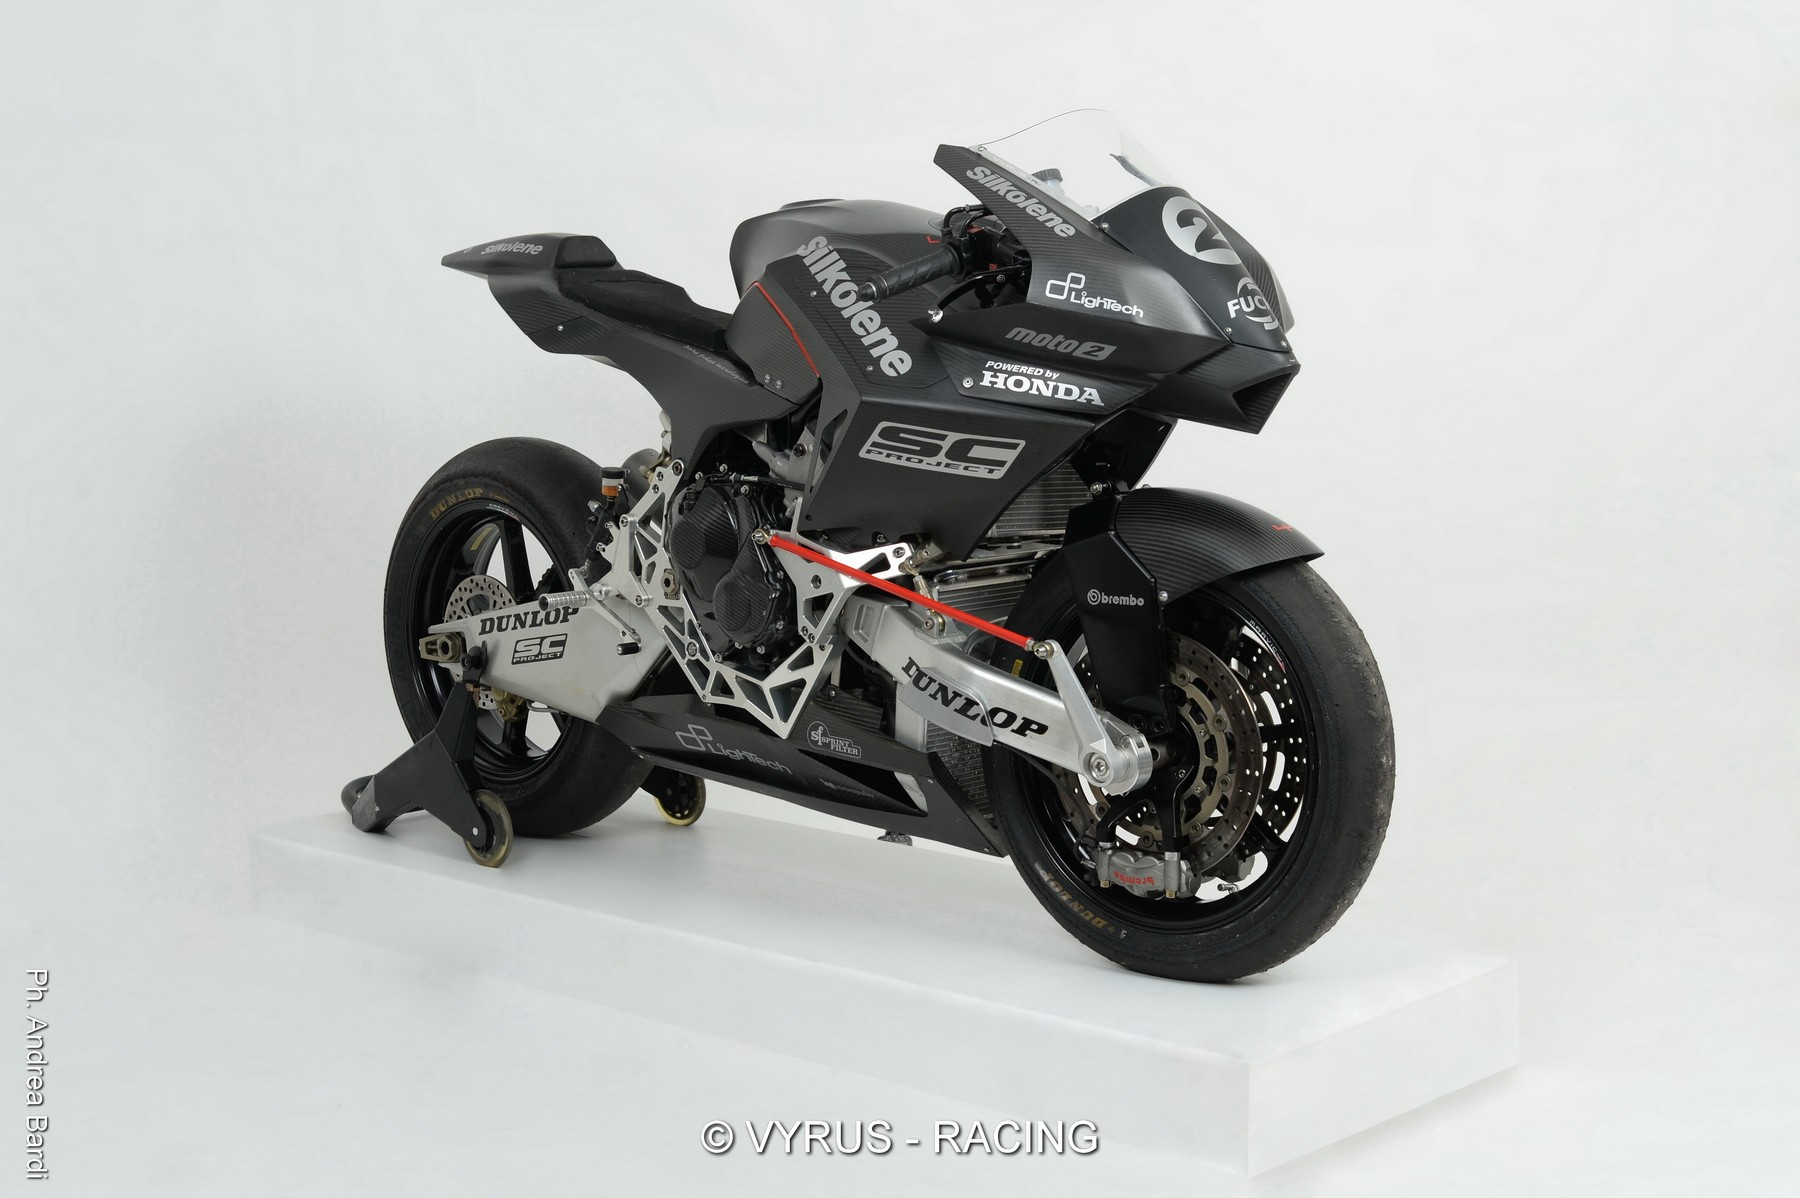 Vyrus 986 M2 to Compete in the CEV Moto2 Races - autoevolution